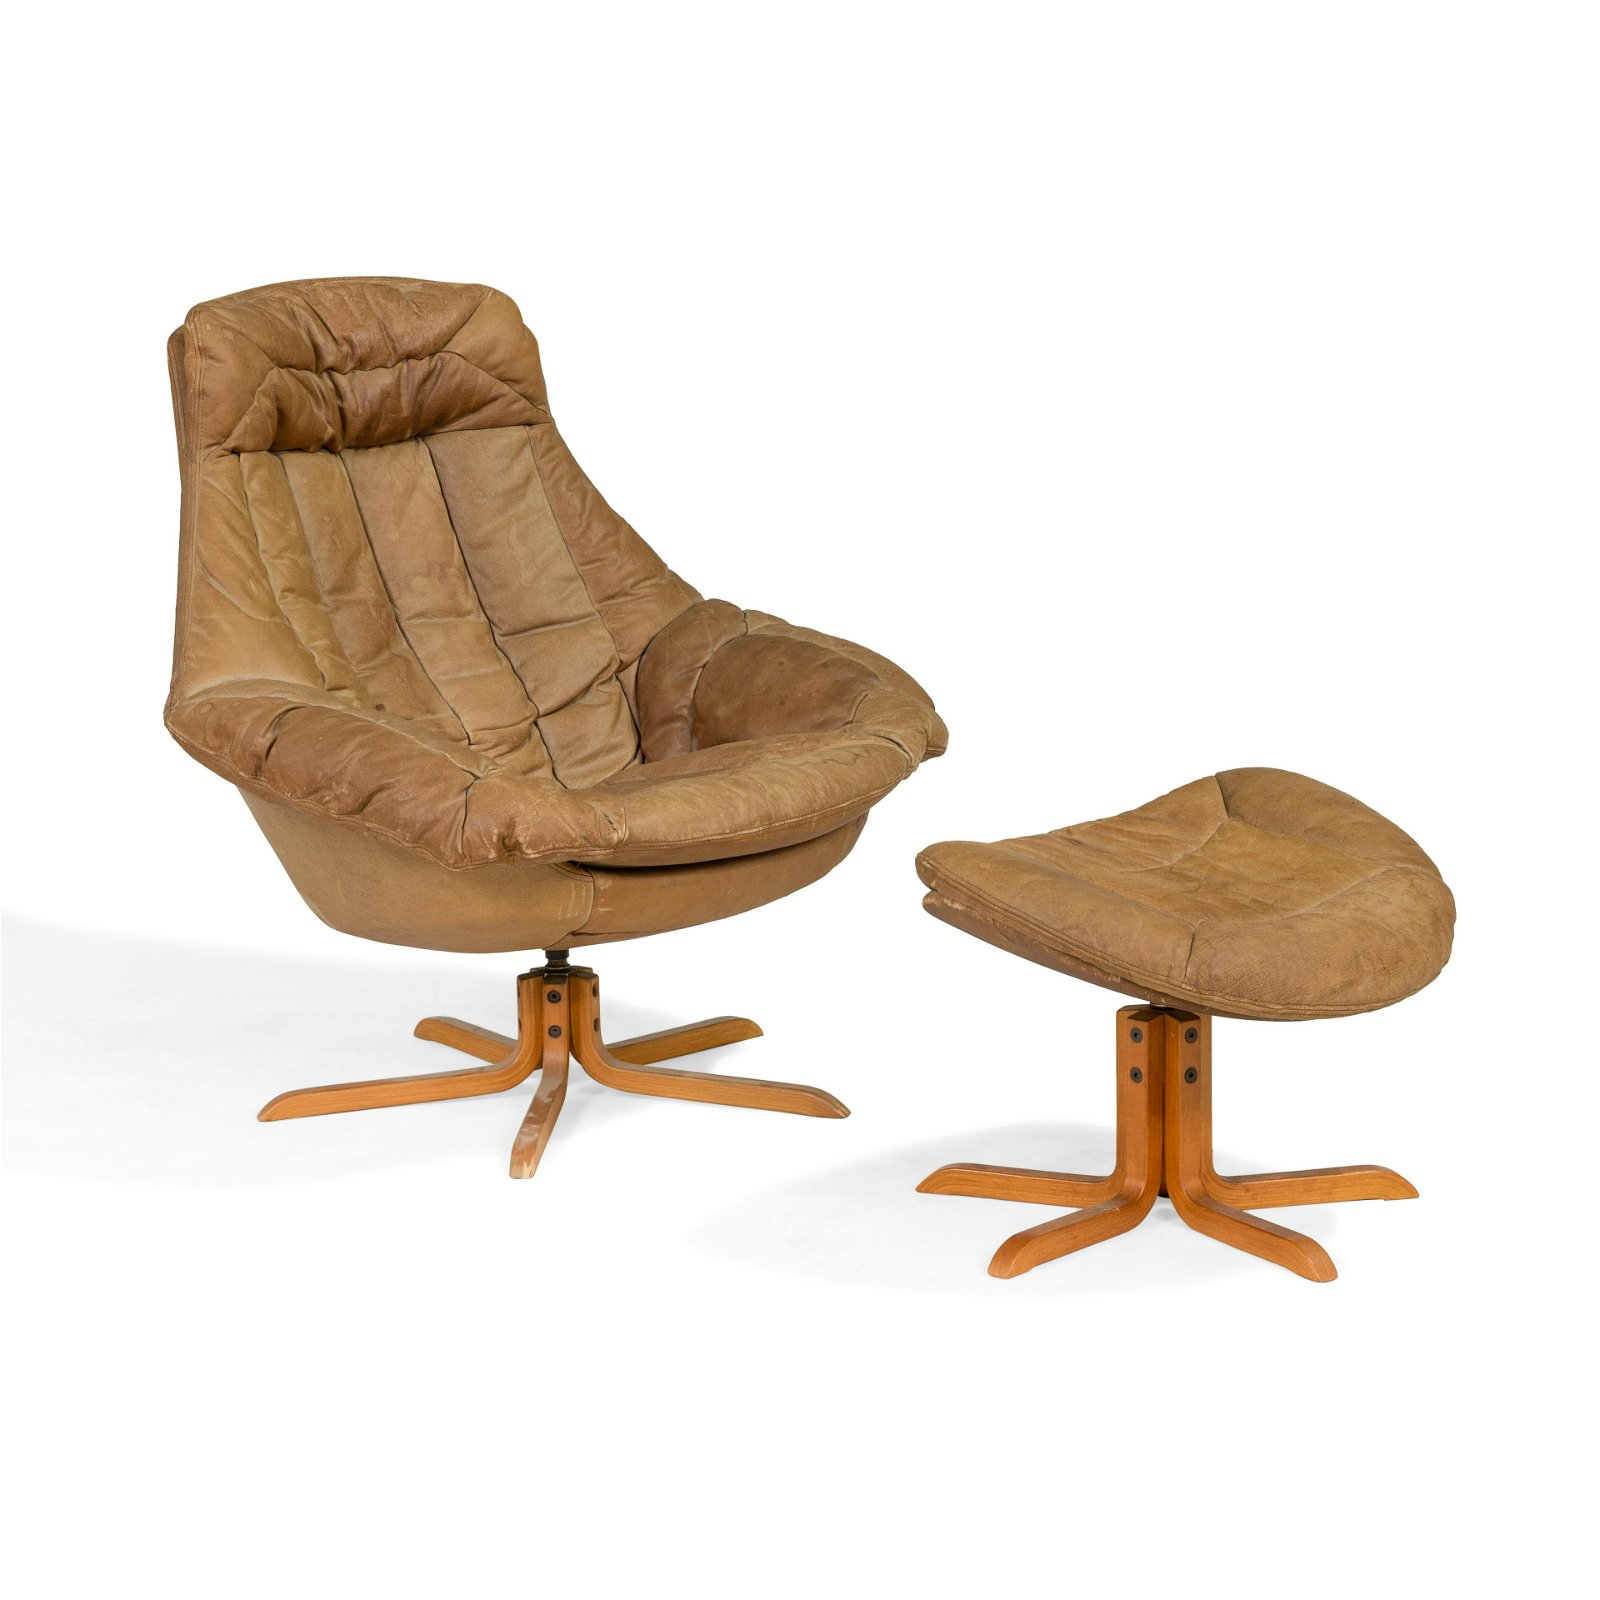 Swedish Leather Chair and Ottoman